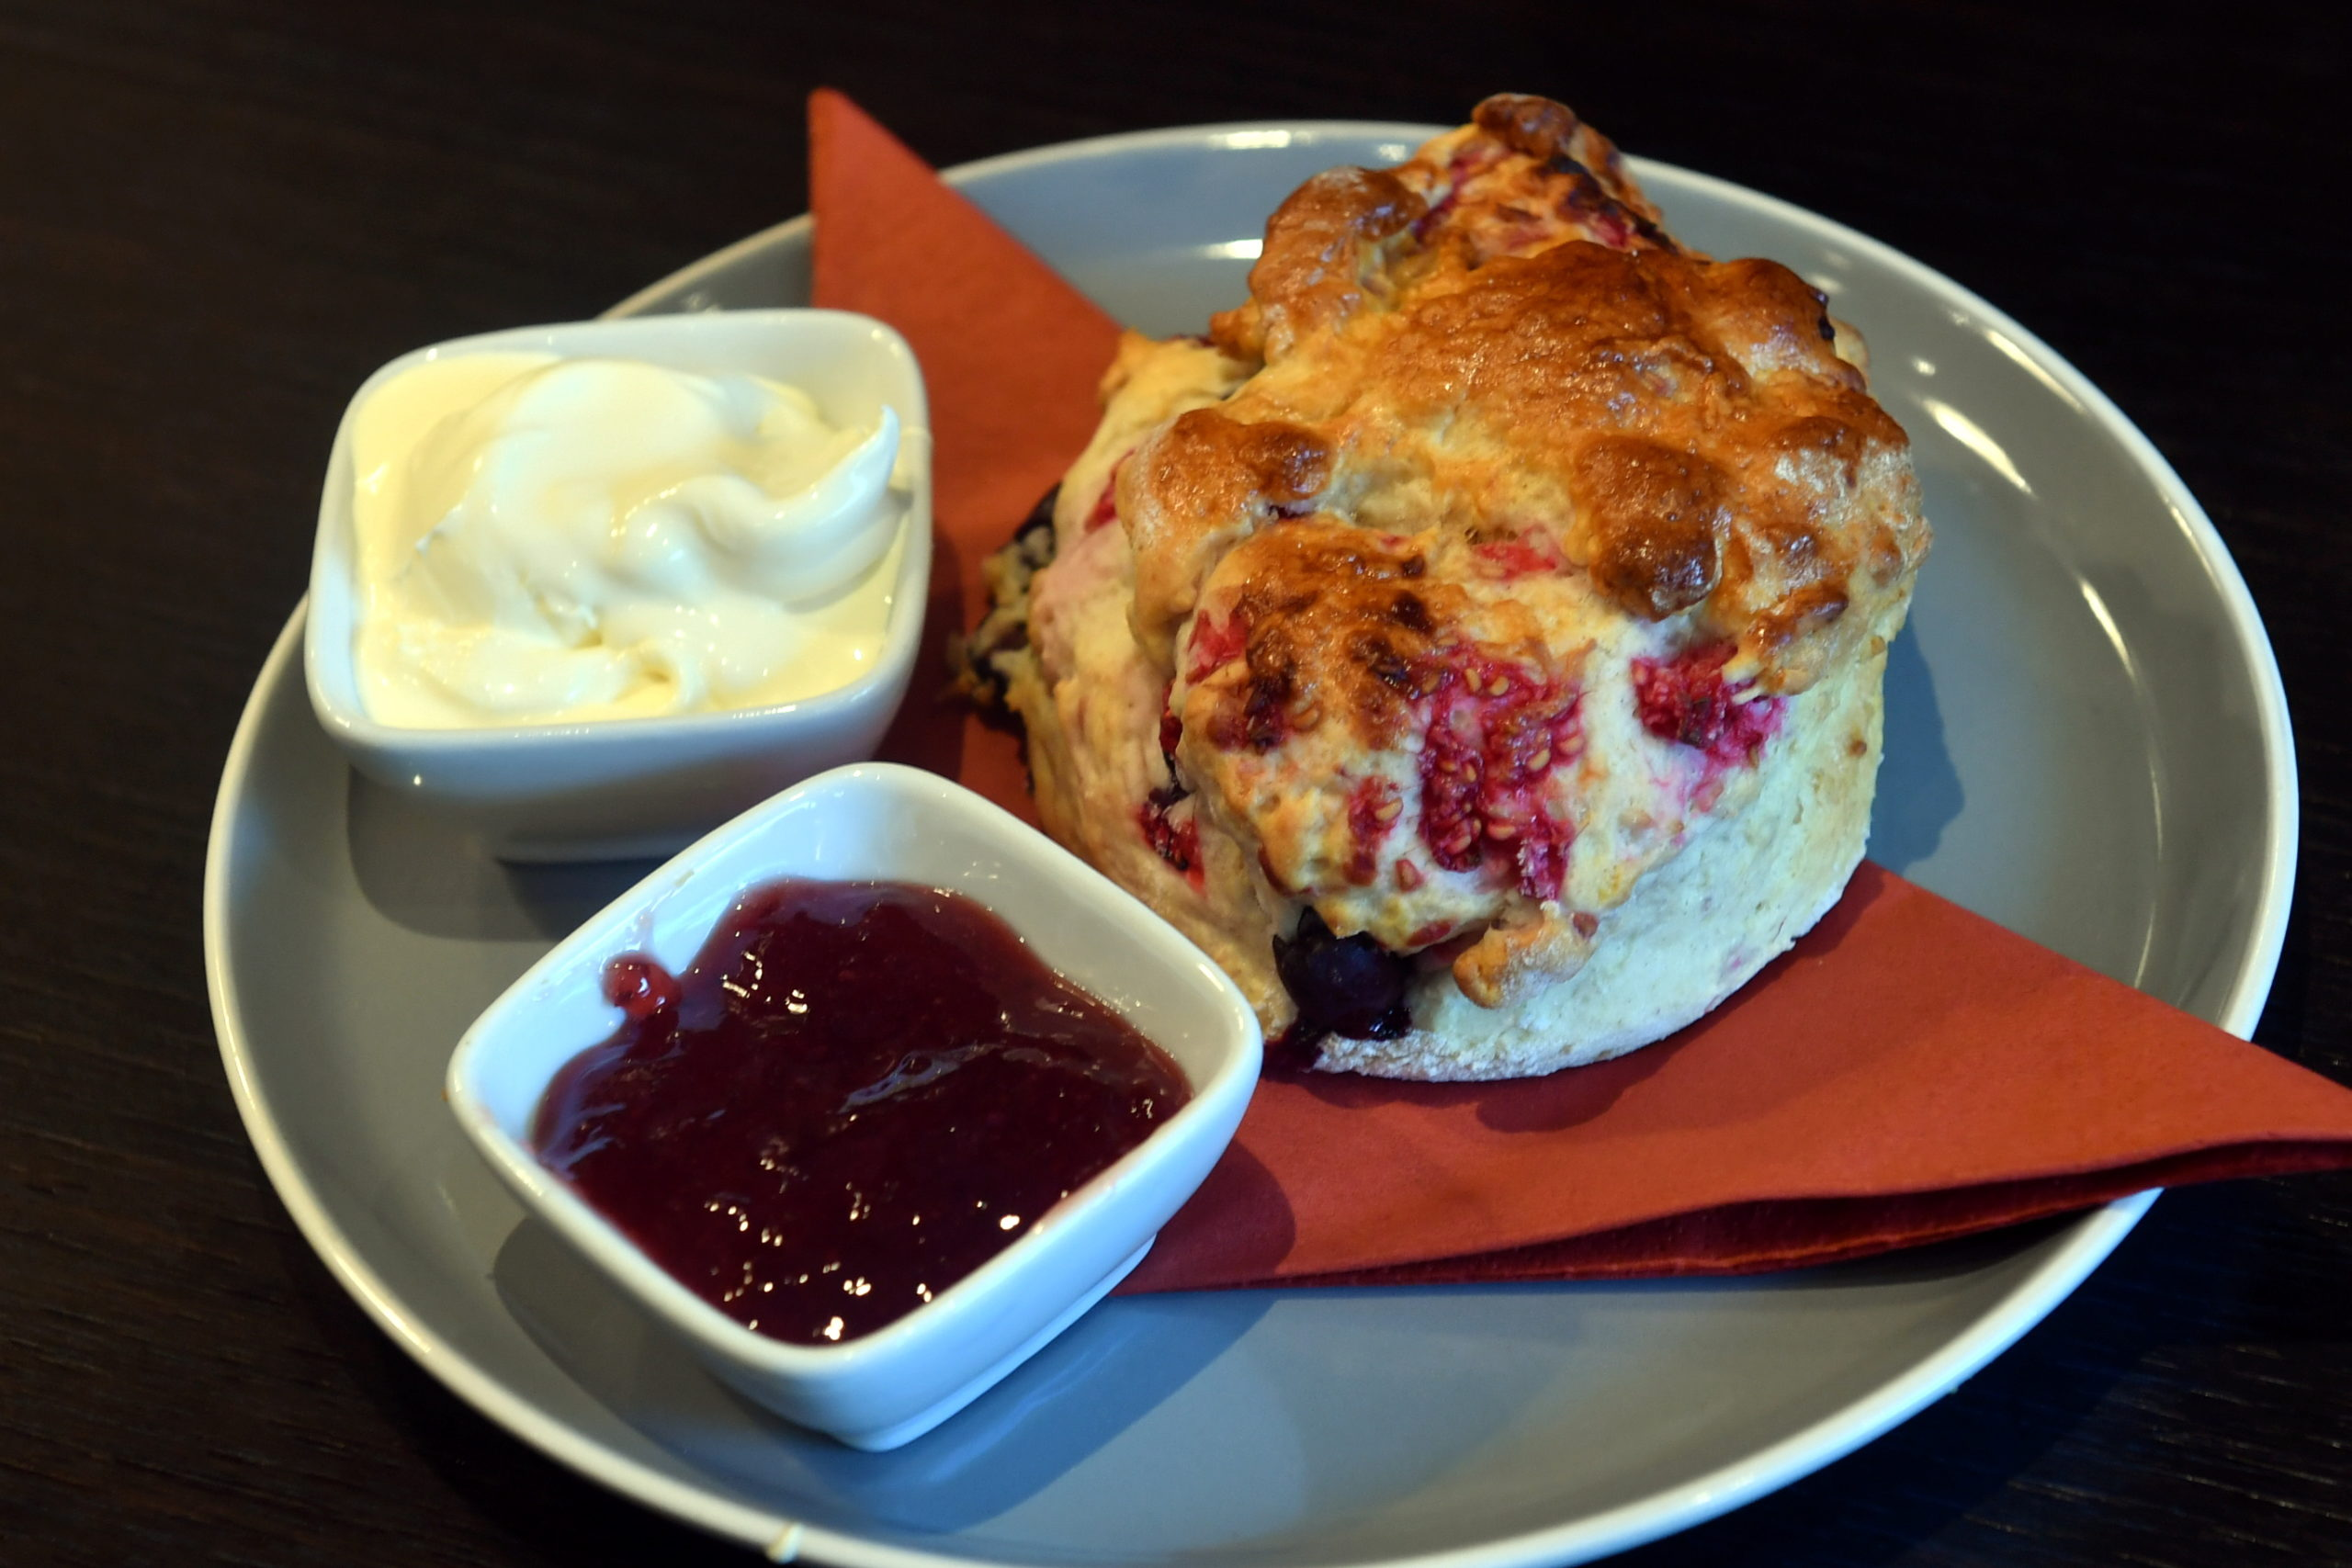 Blether's delicious raspberry and coconut scone